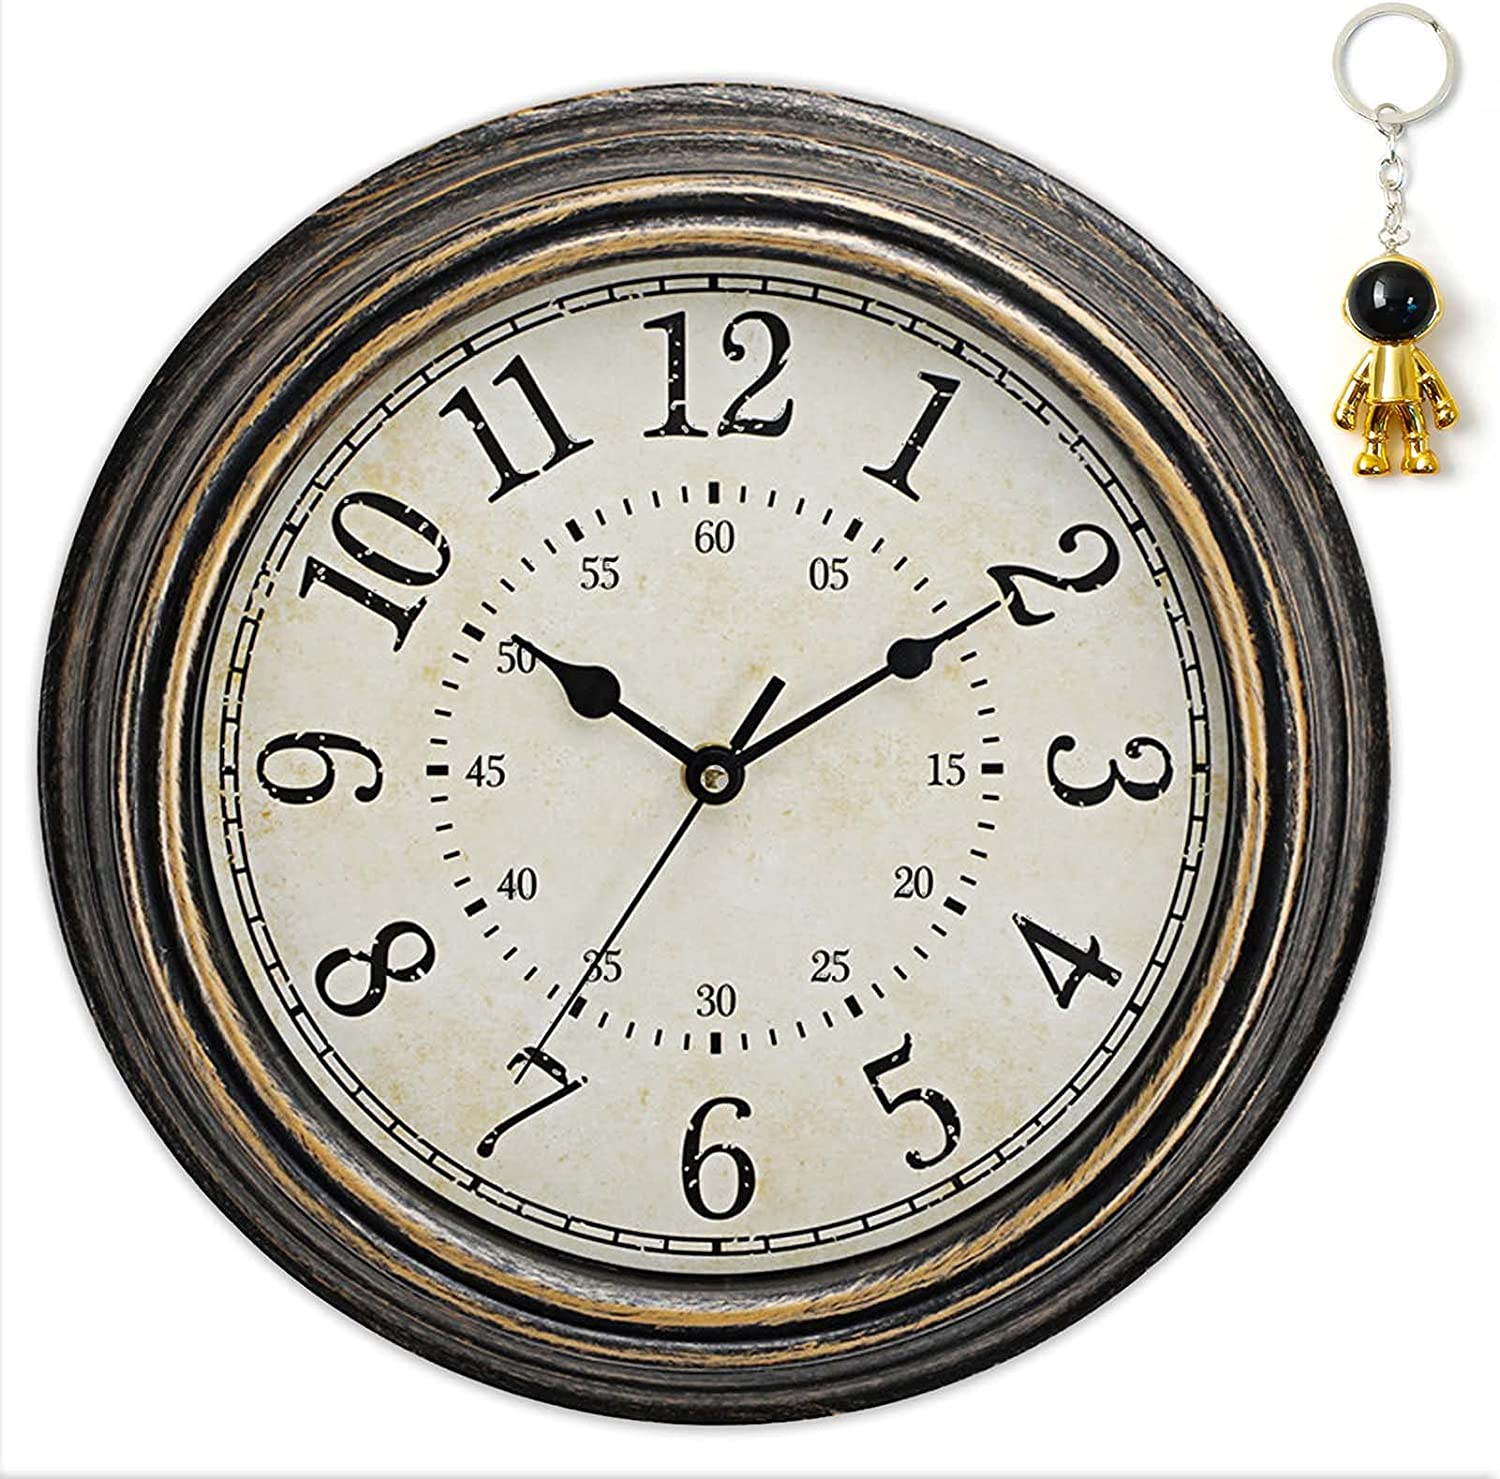 Rustic Wall Clock Battery 11.81-Inch Operated Directly managed store Mounted In stock